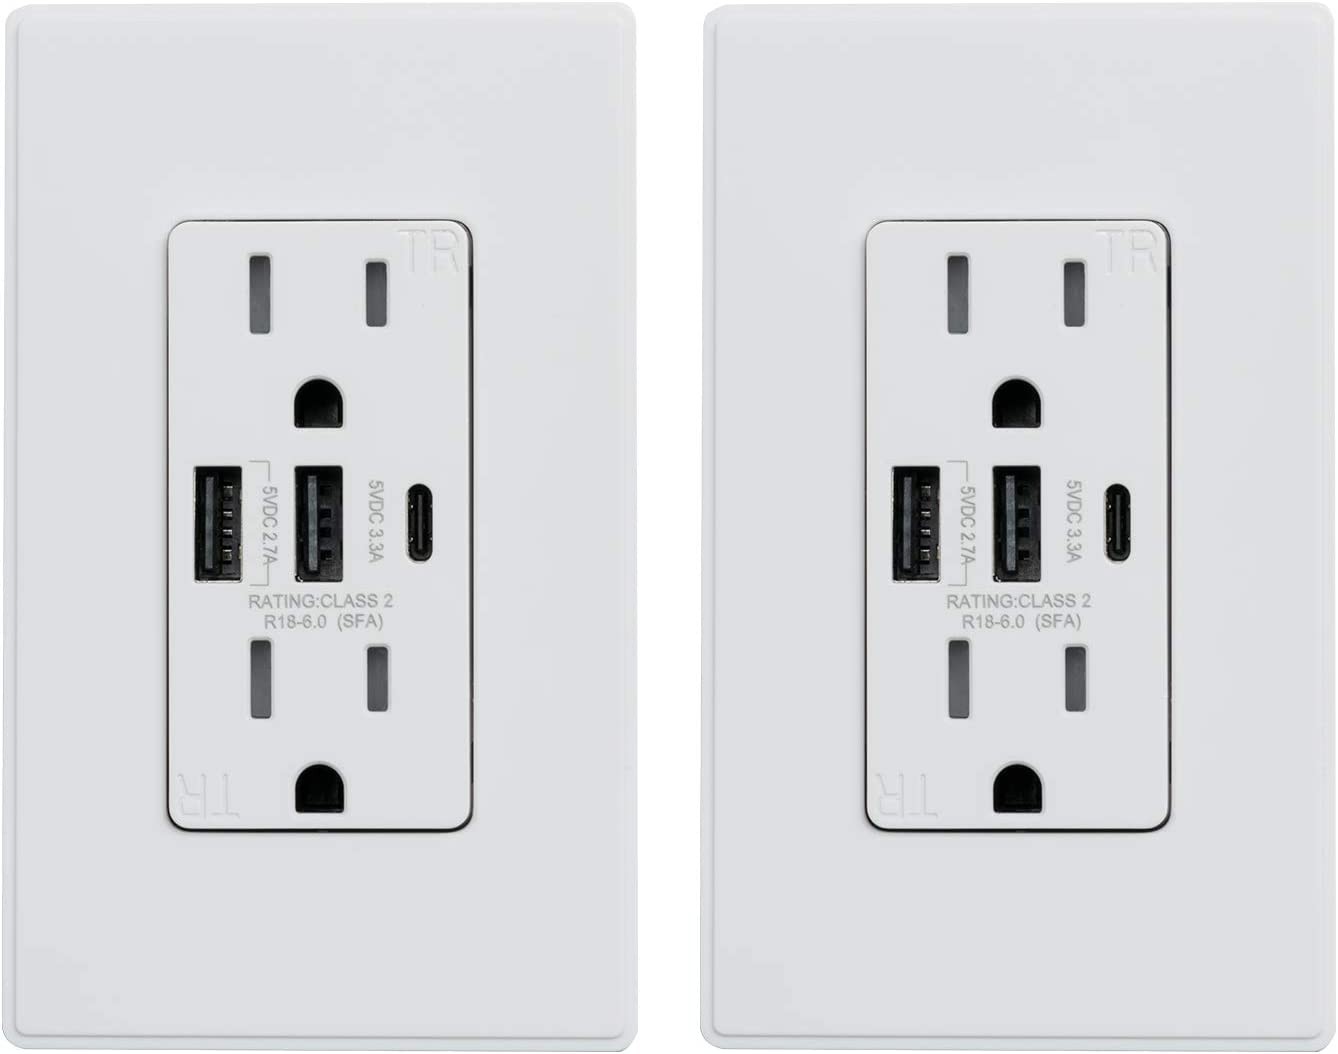 ELEGRP 30W Max 73% OFF 6.0 Amp Limited time sale 3-Port USB Receptacle Wall 15 wit Outlet